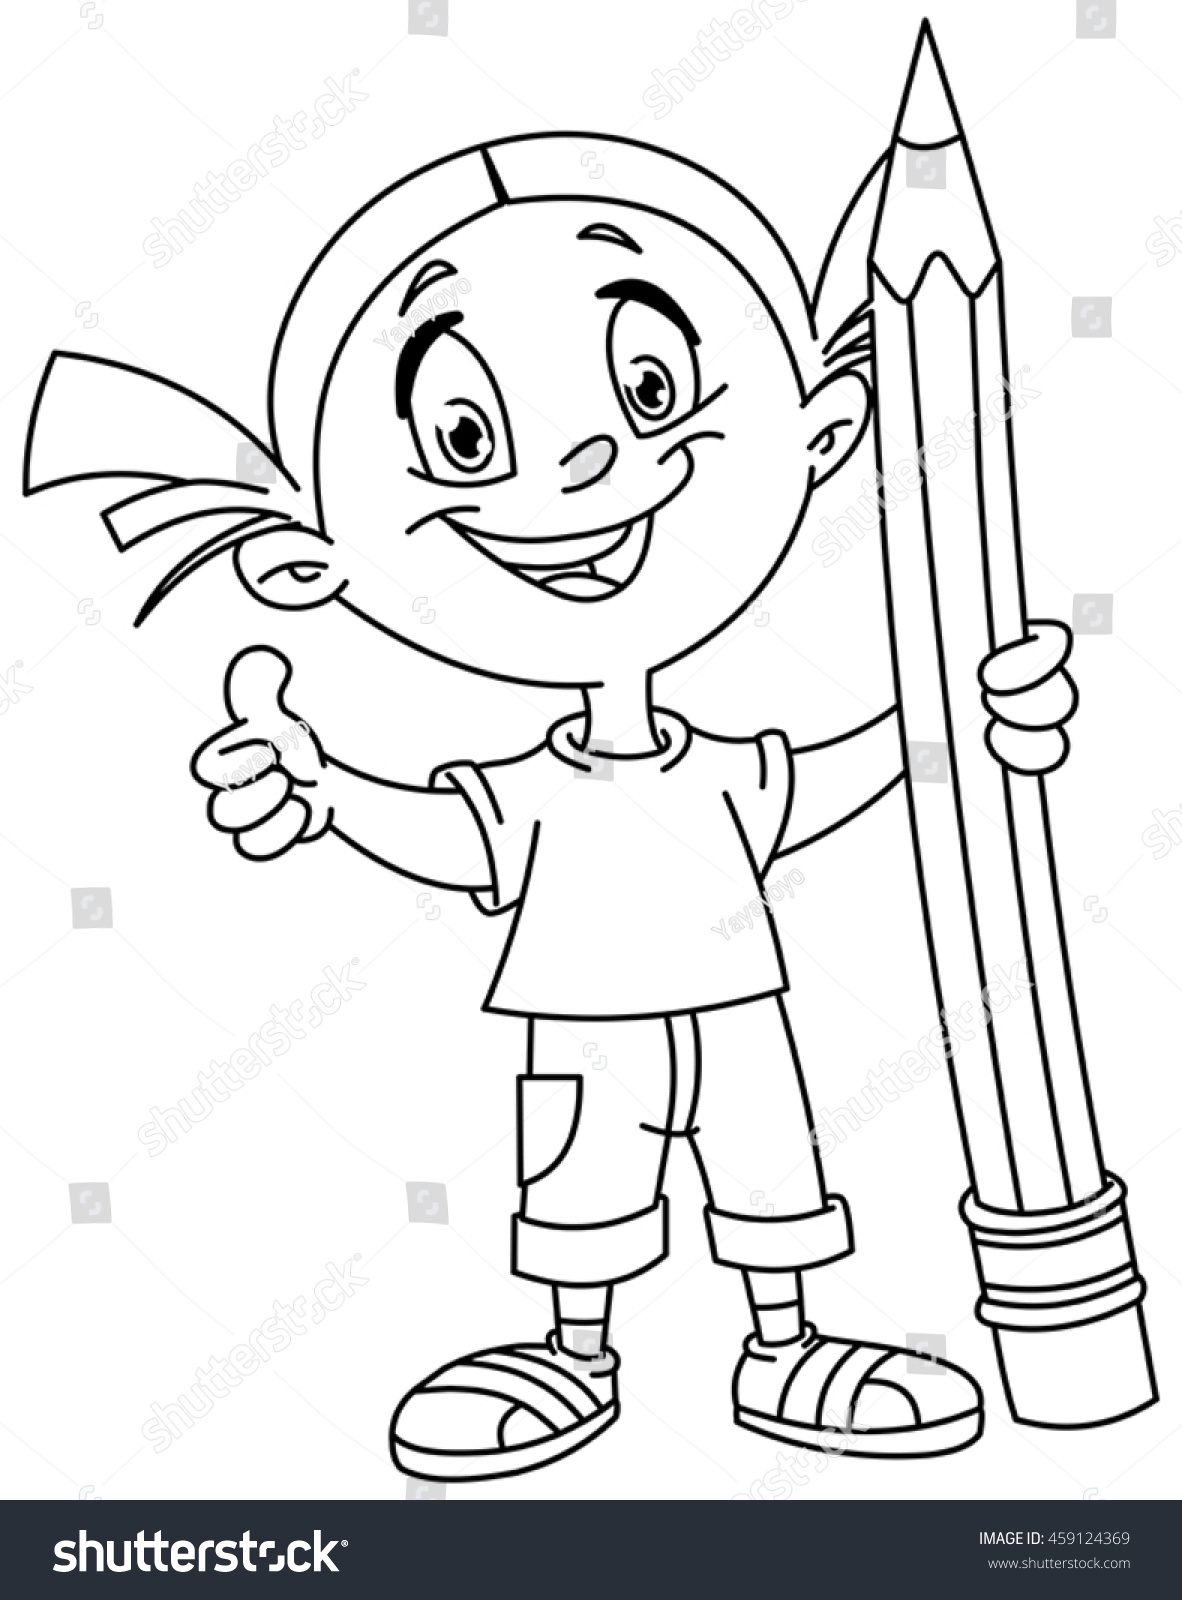 Printable Coloring Pages » Big Girl Coloring Pages - Free ...